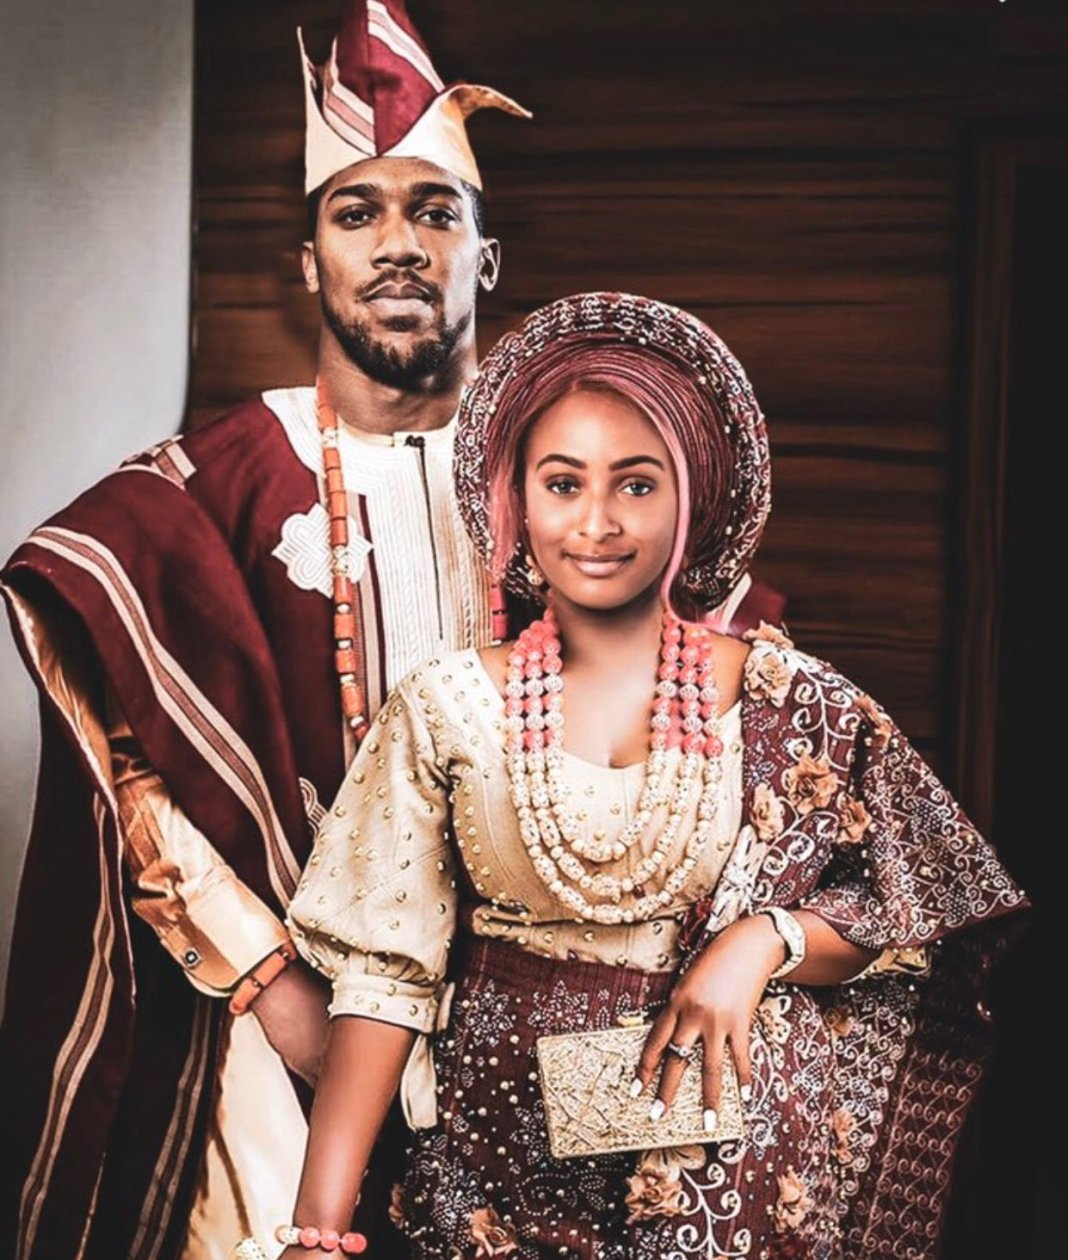 DJ CUPPY Posted This Picture on Twitter, Is She Married to Anthony Joshua? Checkout Fans Reactions DJ CUPPY Posted This Picture on Twitter, Is She Married to Anthony Joshua? Checkout Fans Reactions IMG 20201001 142746